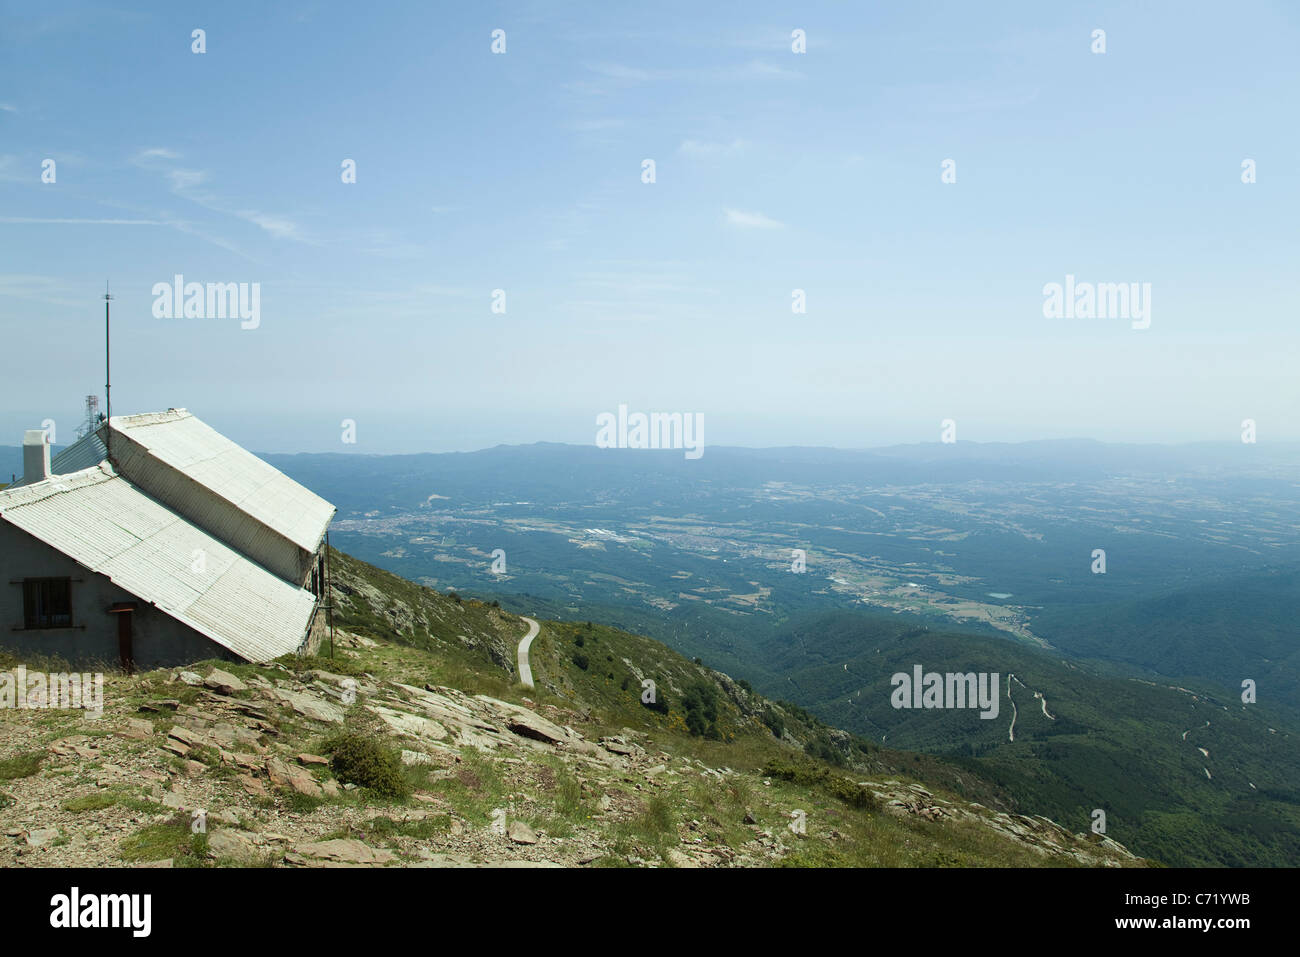 House resting on mountain top - Stock Image